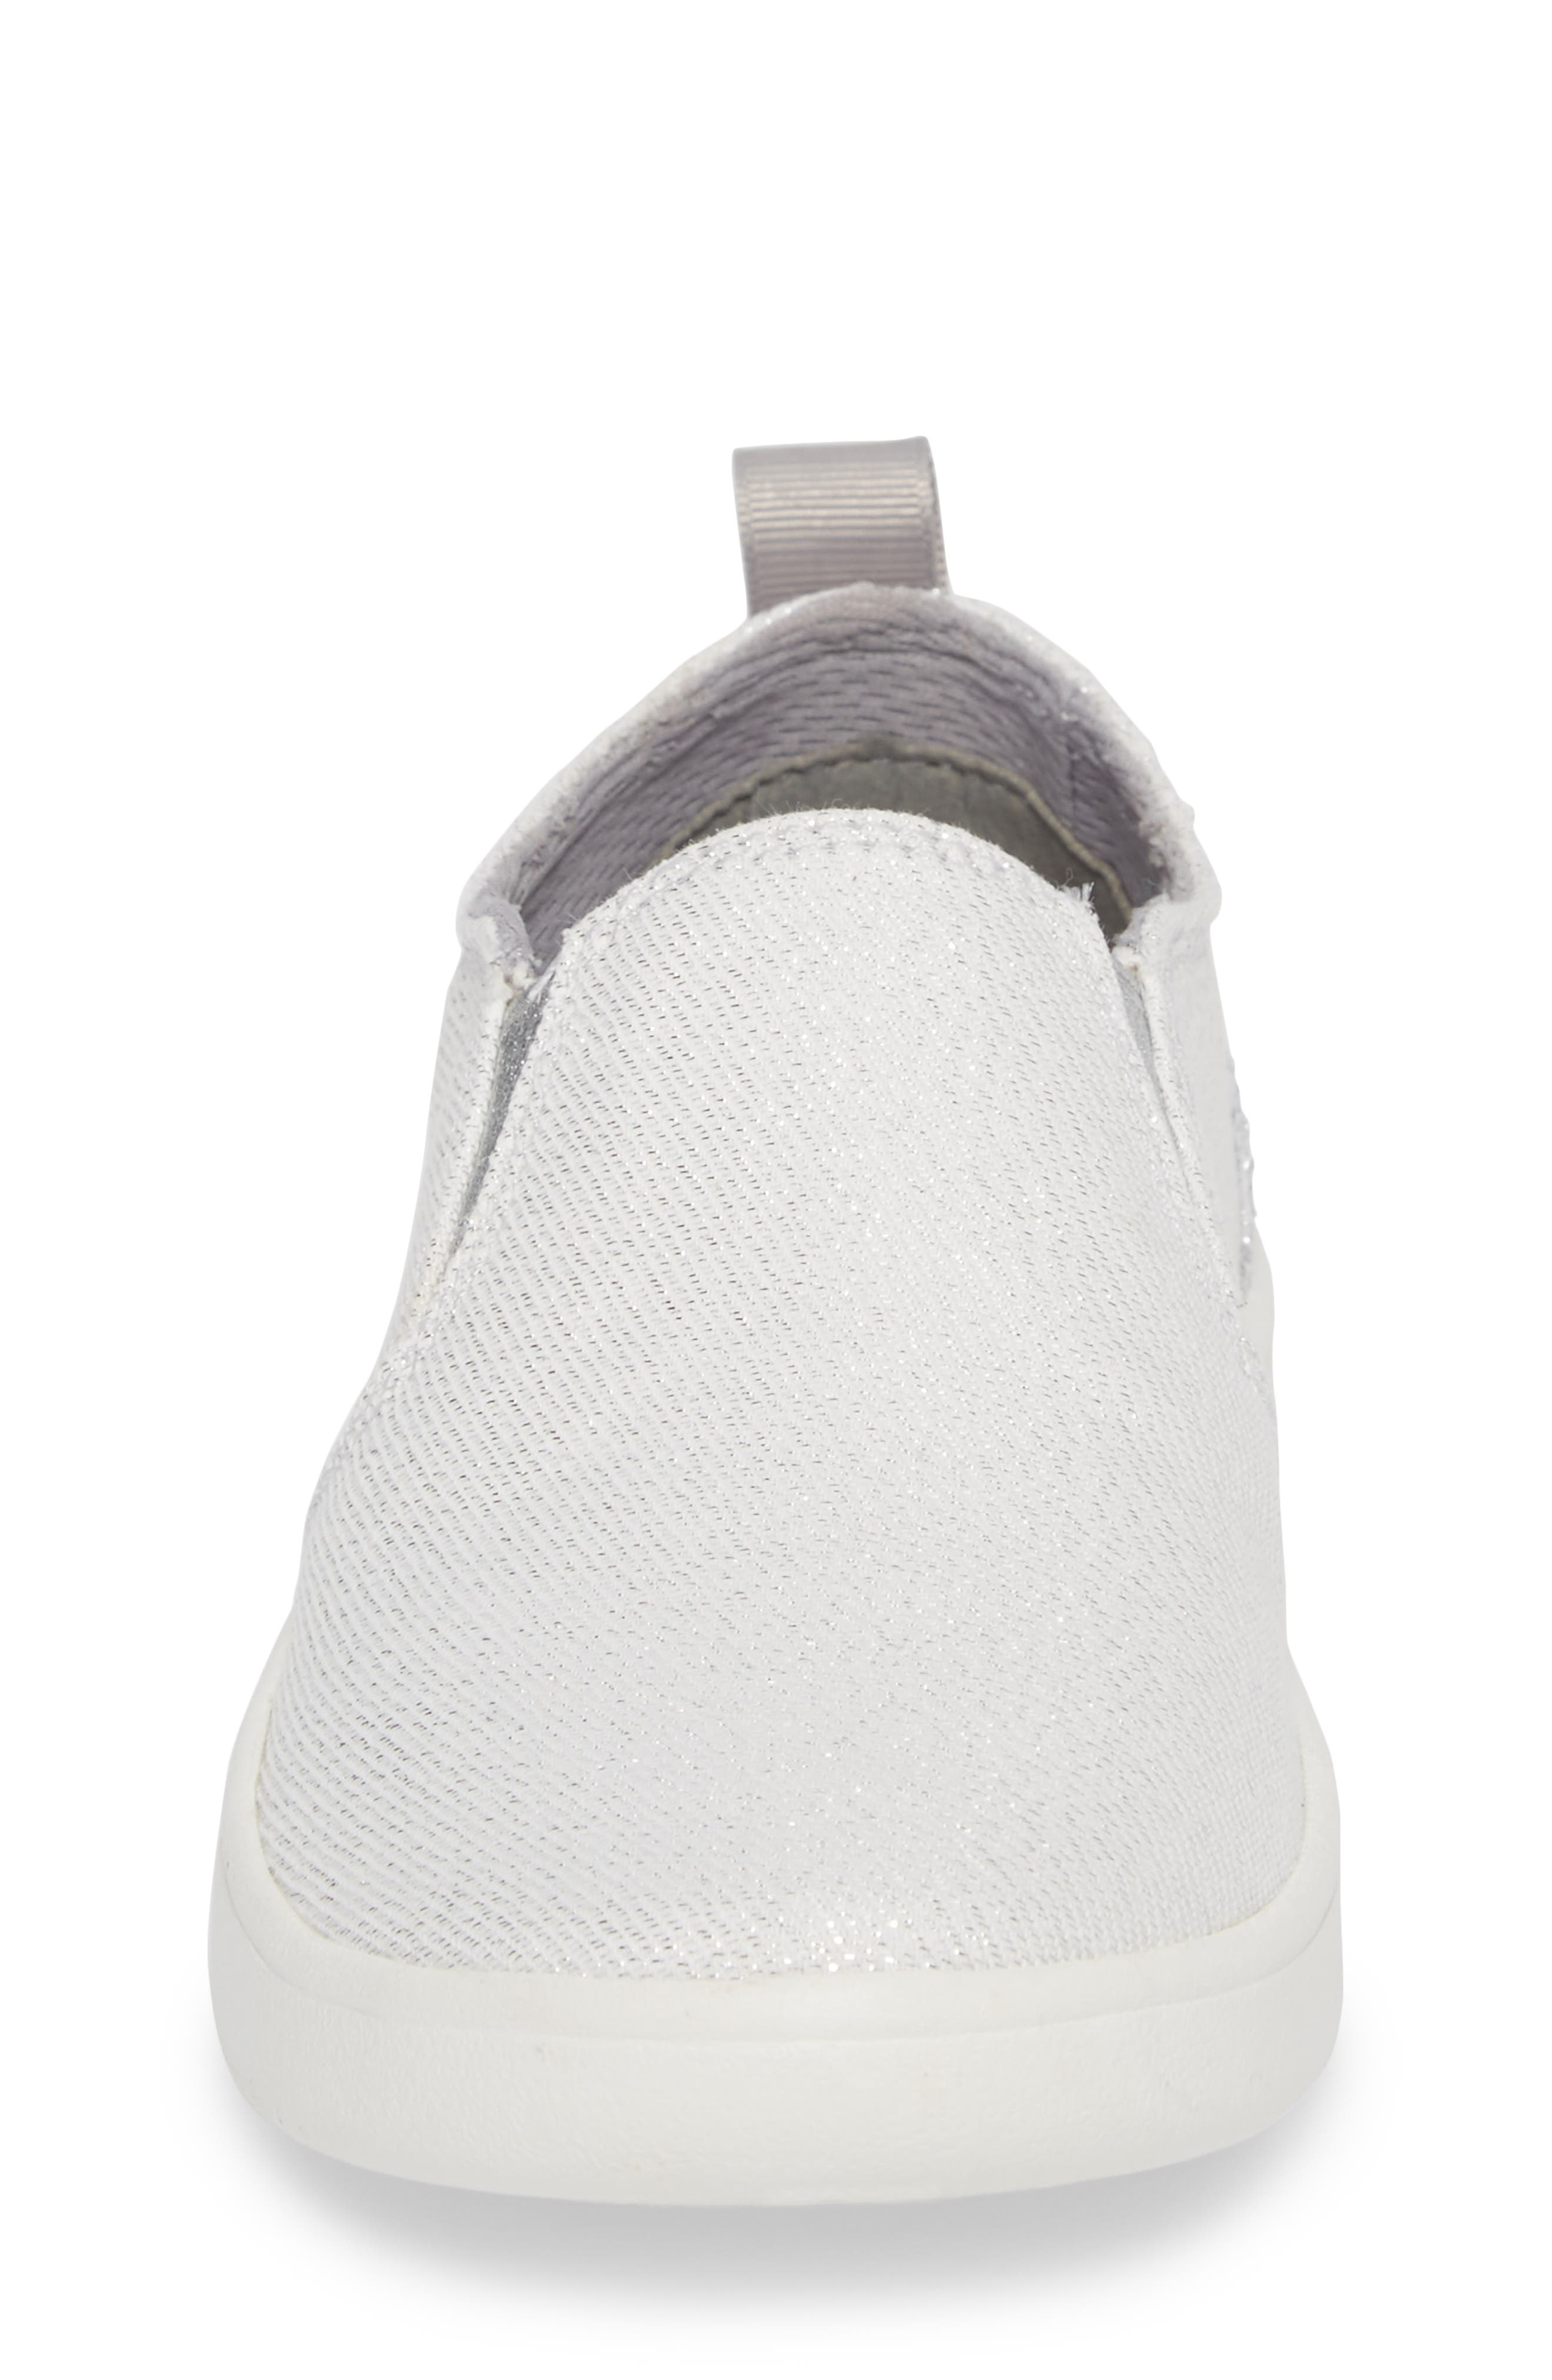 Gantry Sparkles Slip-On Sneaker,                             Alternate thumbnail 4, color,                             Silver